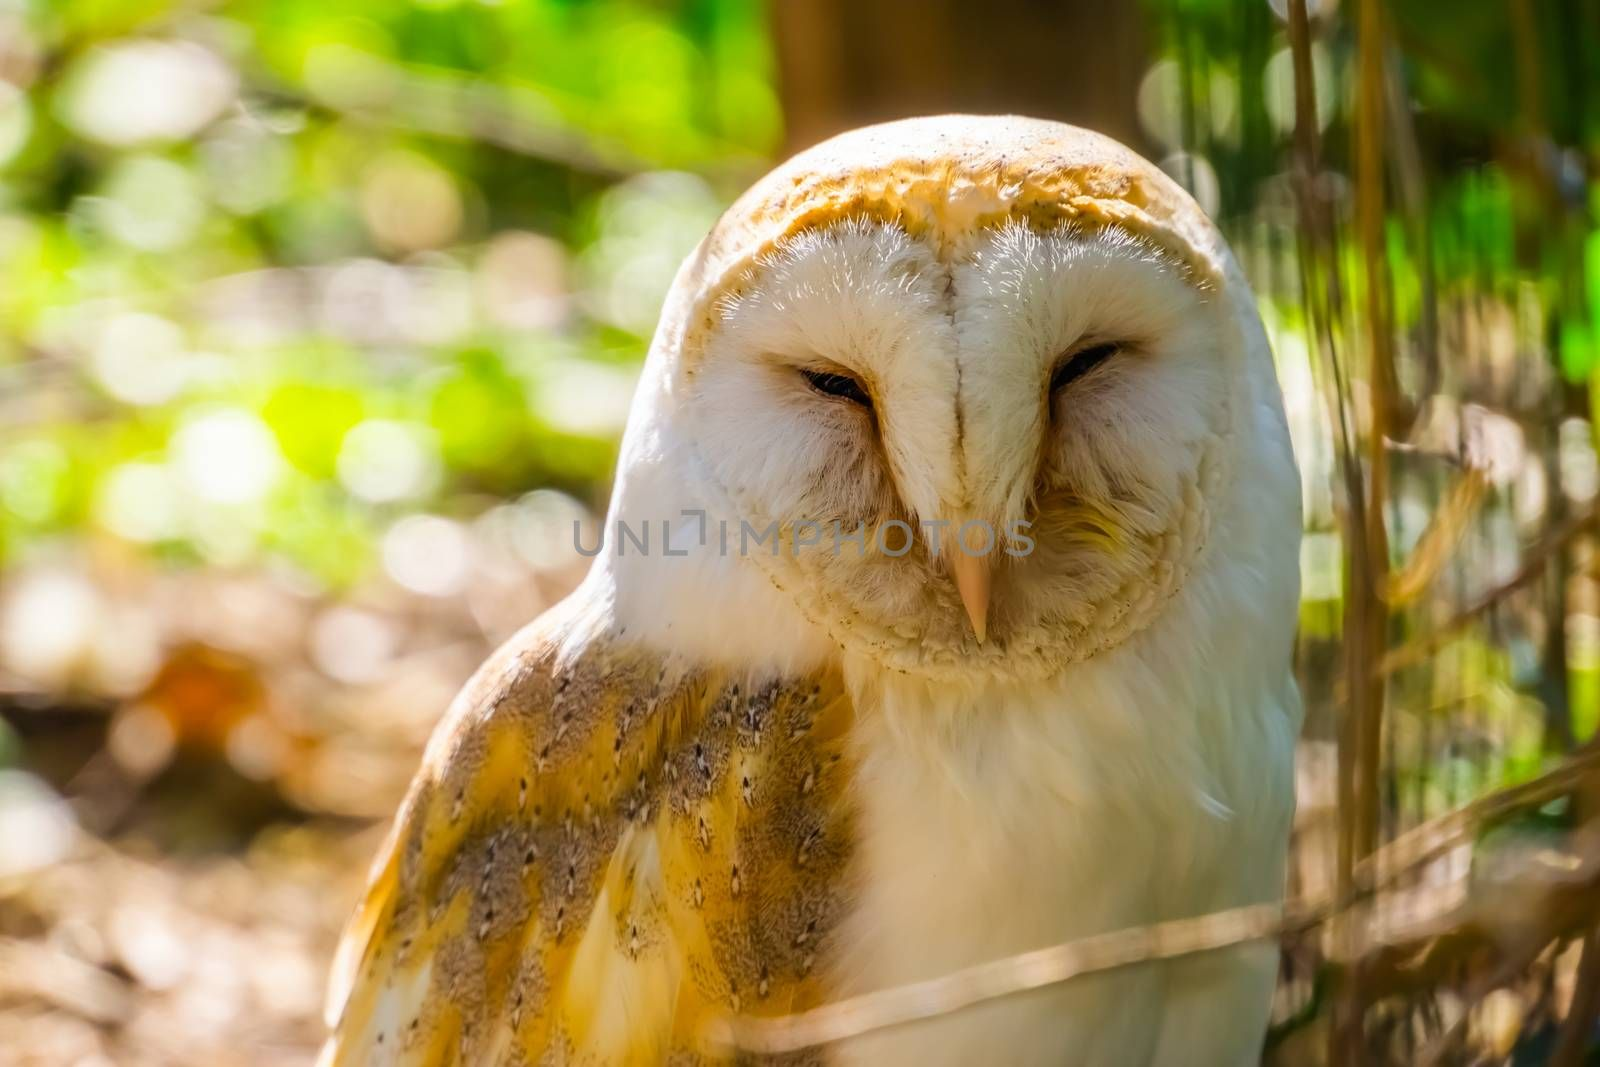 the face of a common barn owl in closeup, bird specie from the Netherlands